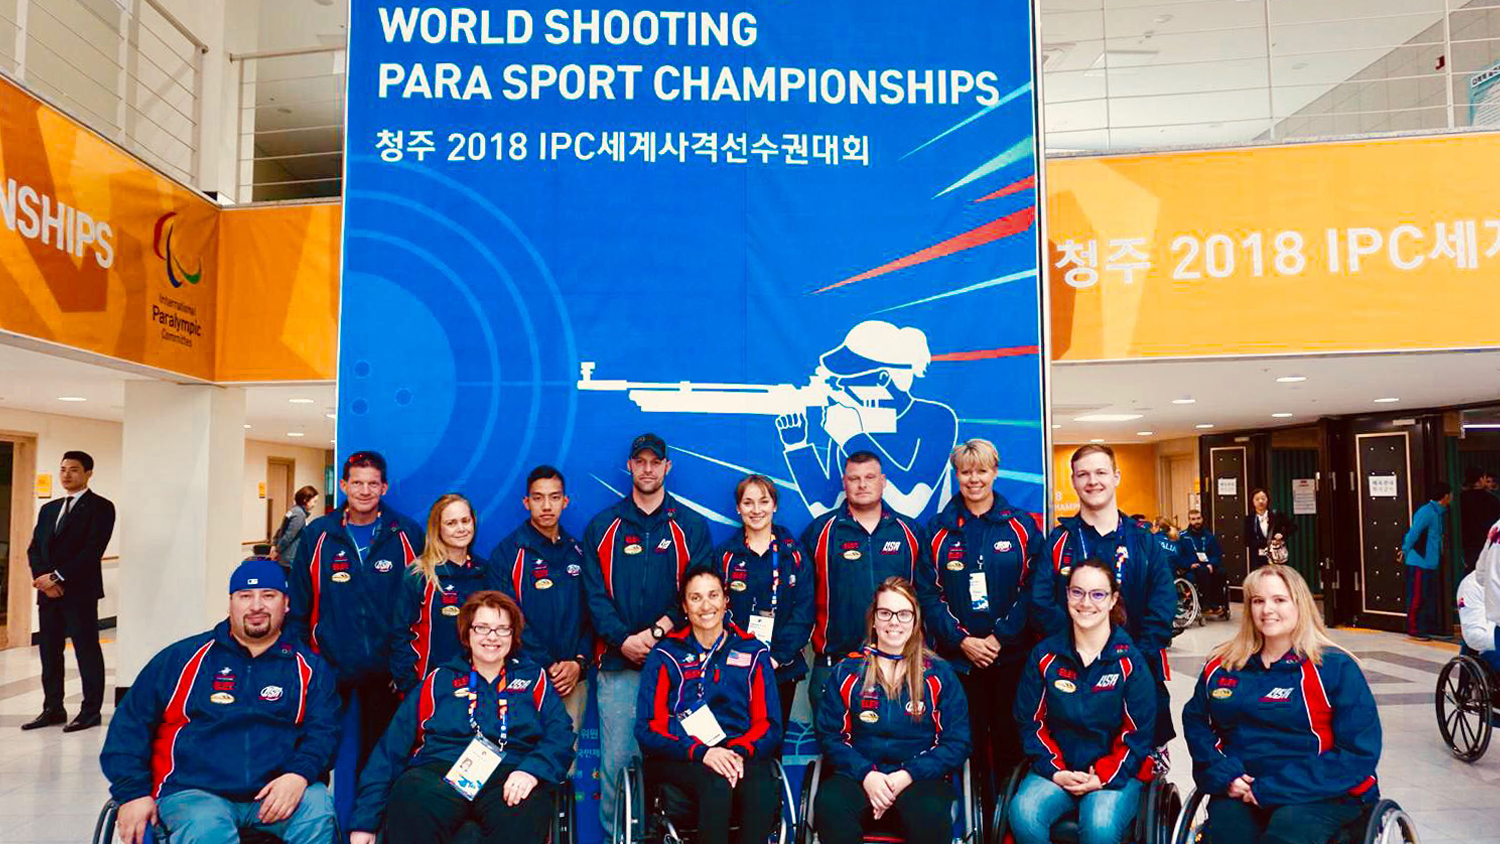 NRA Foundation Helps Send Paralympic Shooters to World Championships in South Korea